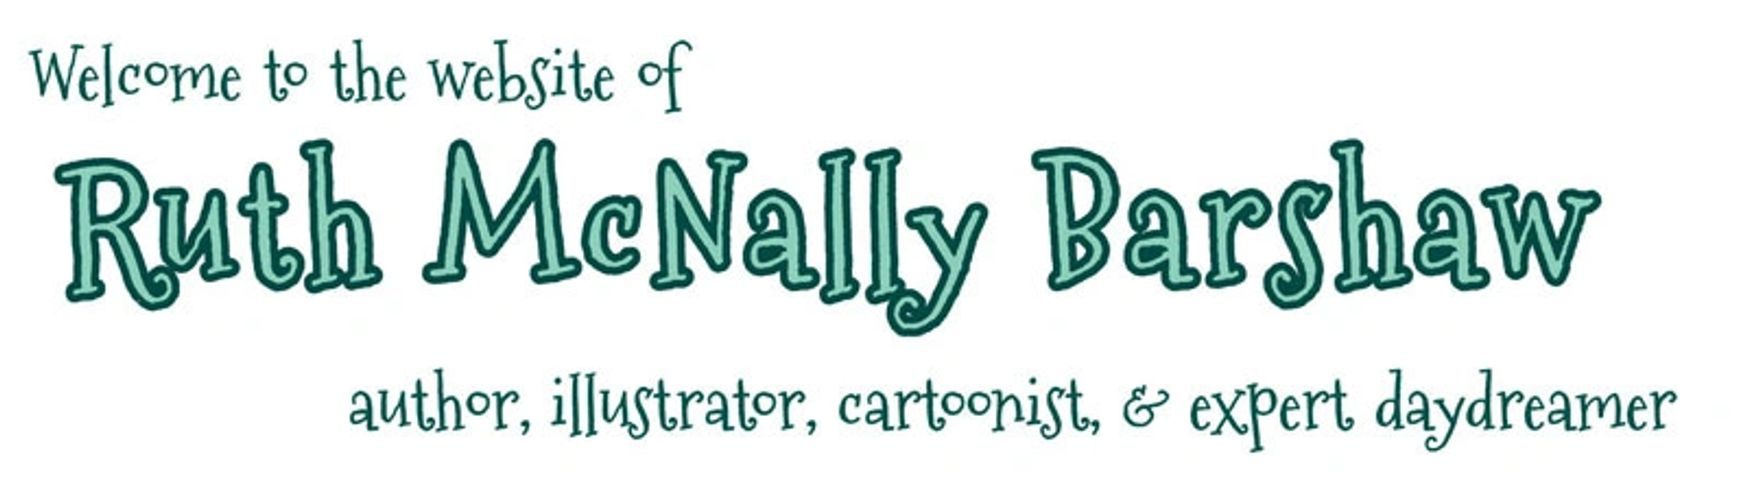 Welcome to the website of Ruth McNally Barshaw, author, illustrator, cartoonist, & expert daydreamer